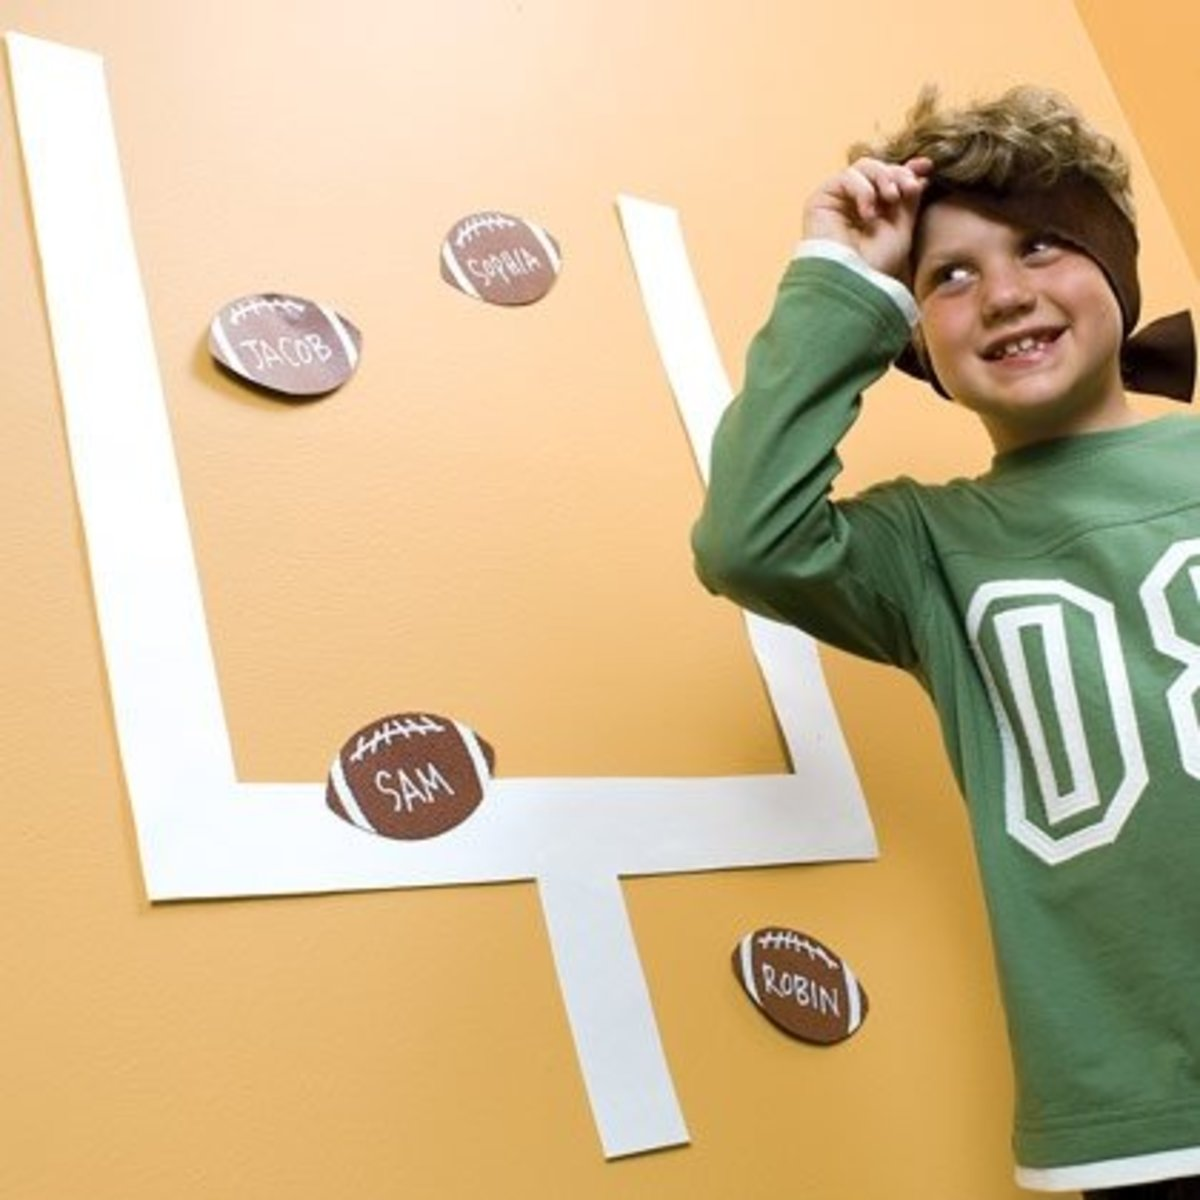 7 Super Bowl Crafts For Kids www.TodaysMama.com #SuperBowl2014